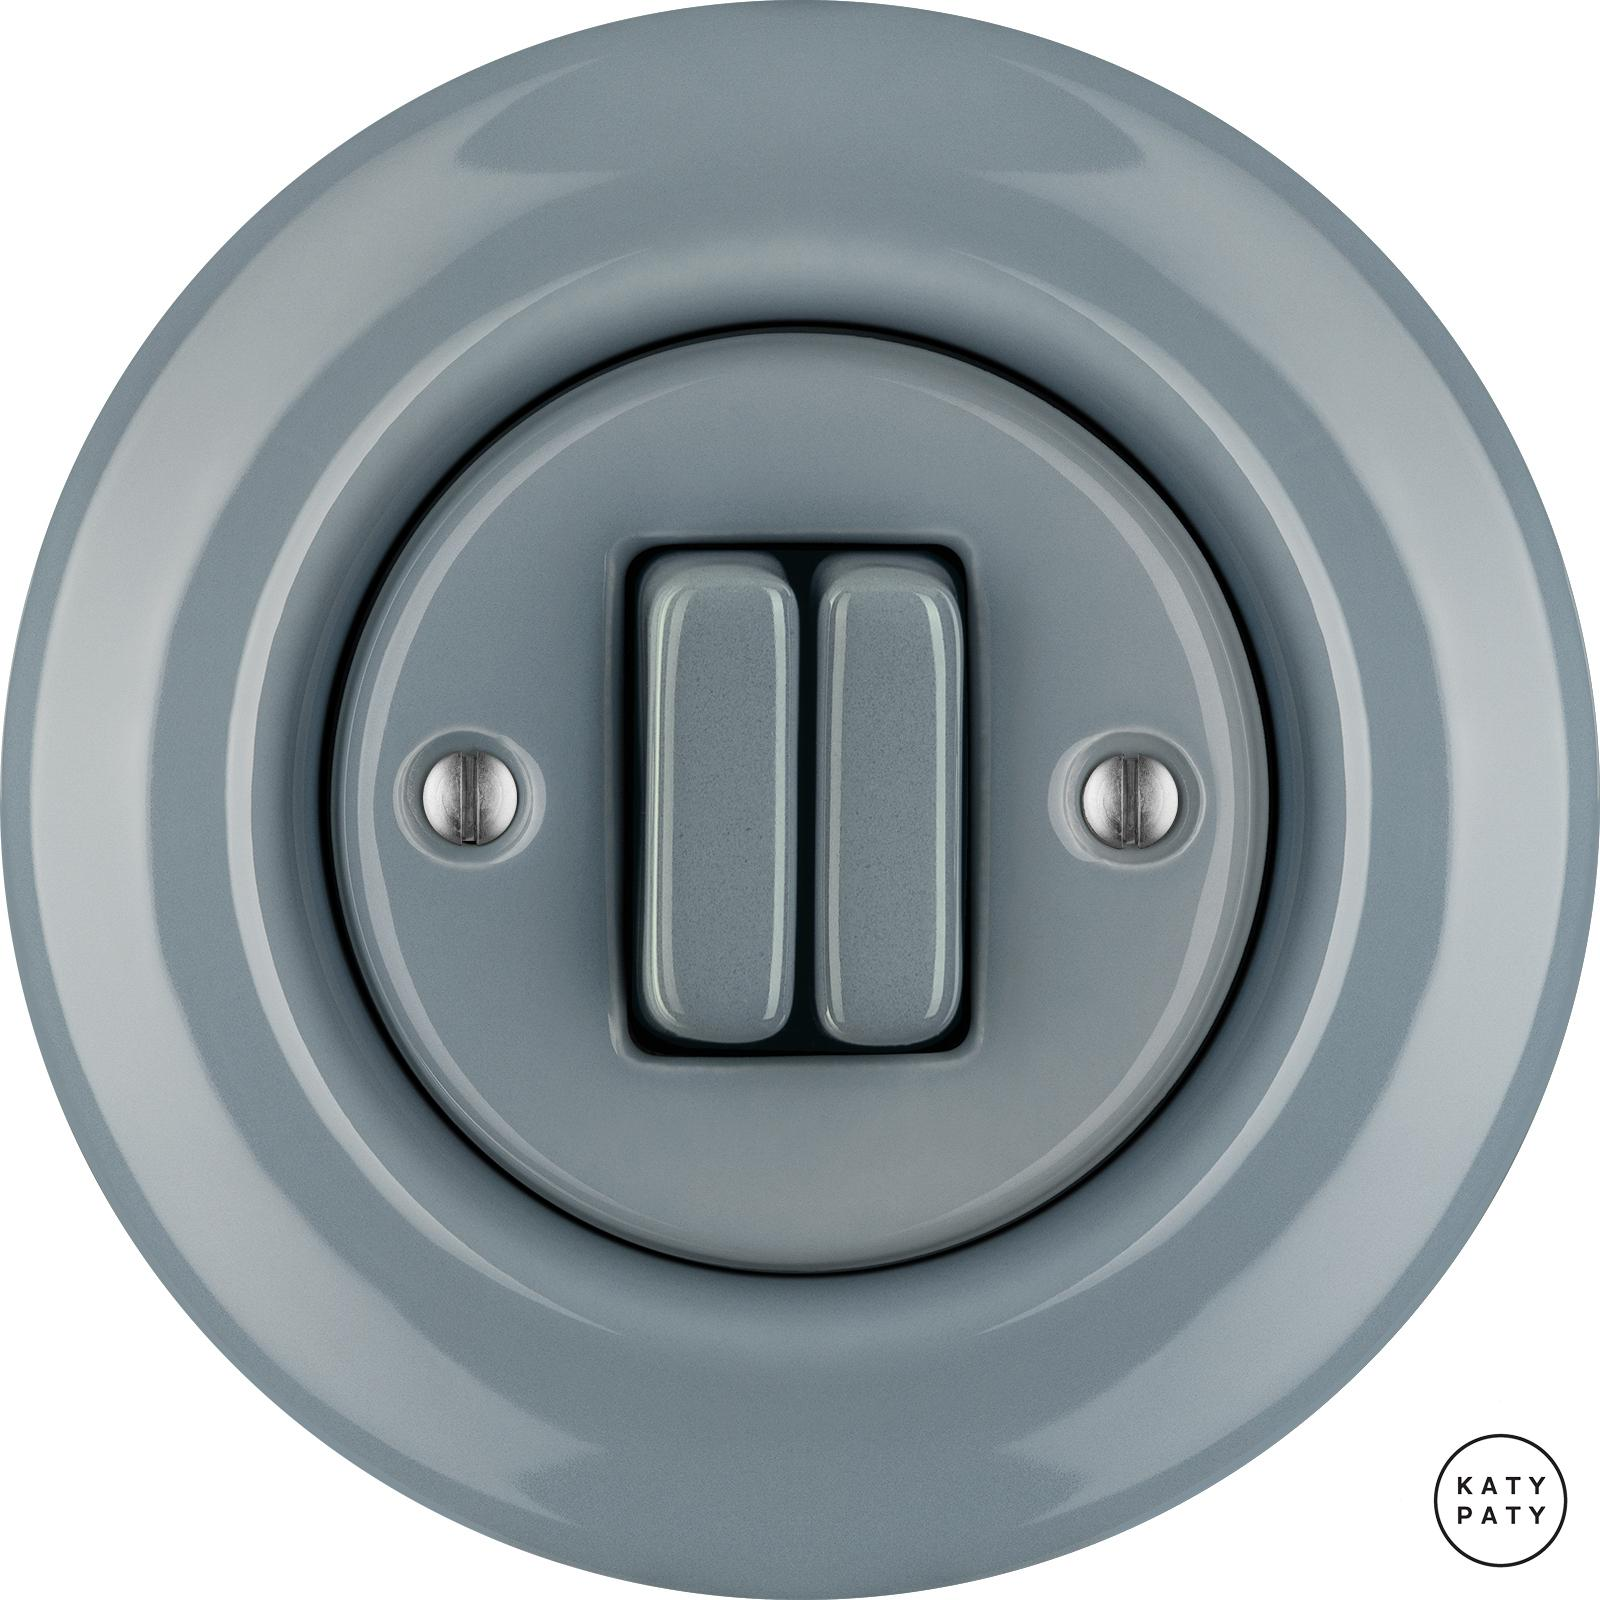 Porcelain switches - a double gang ()  - LIVOR | Katy Paty